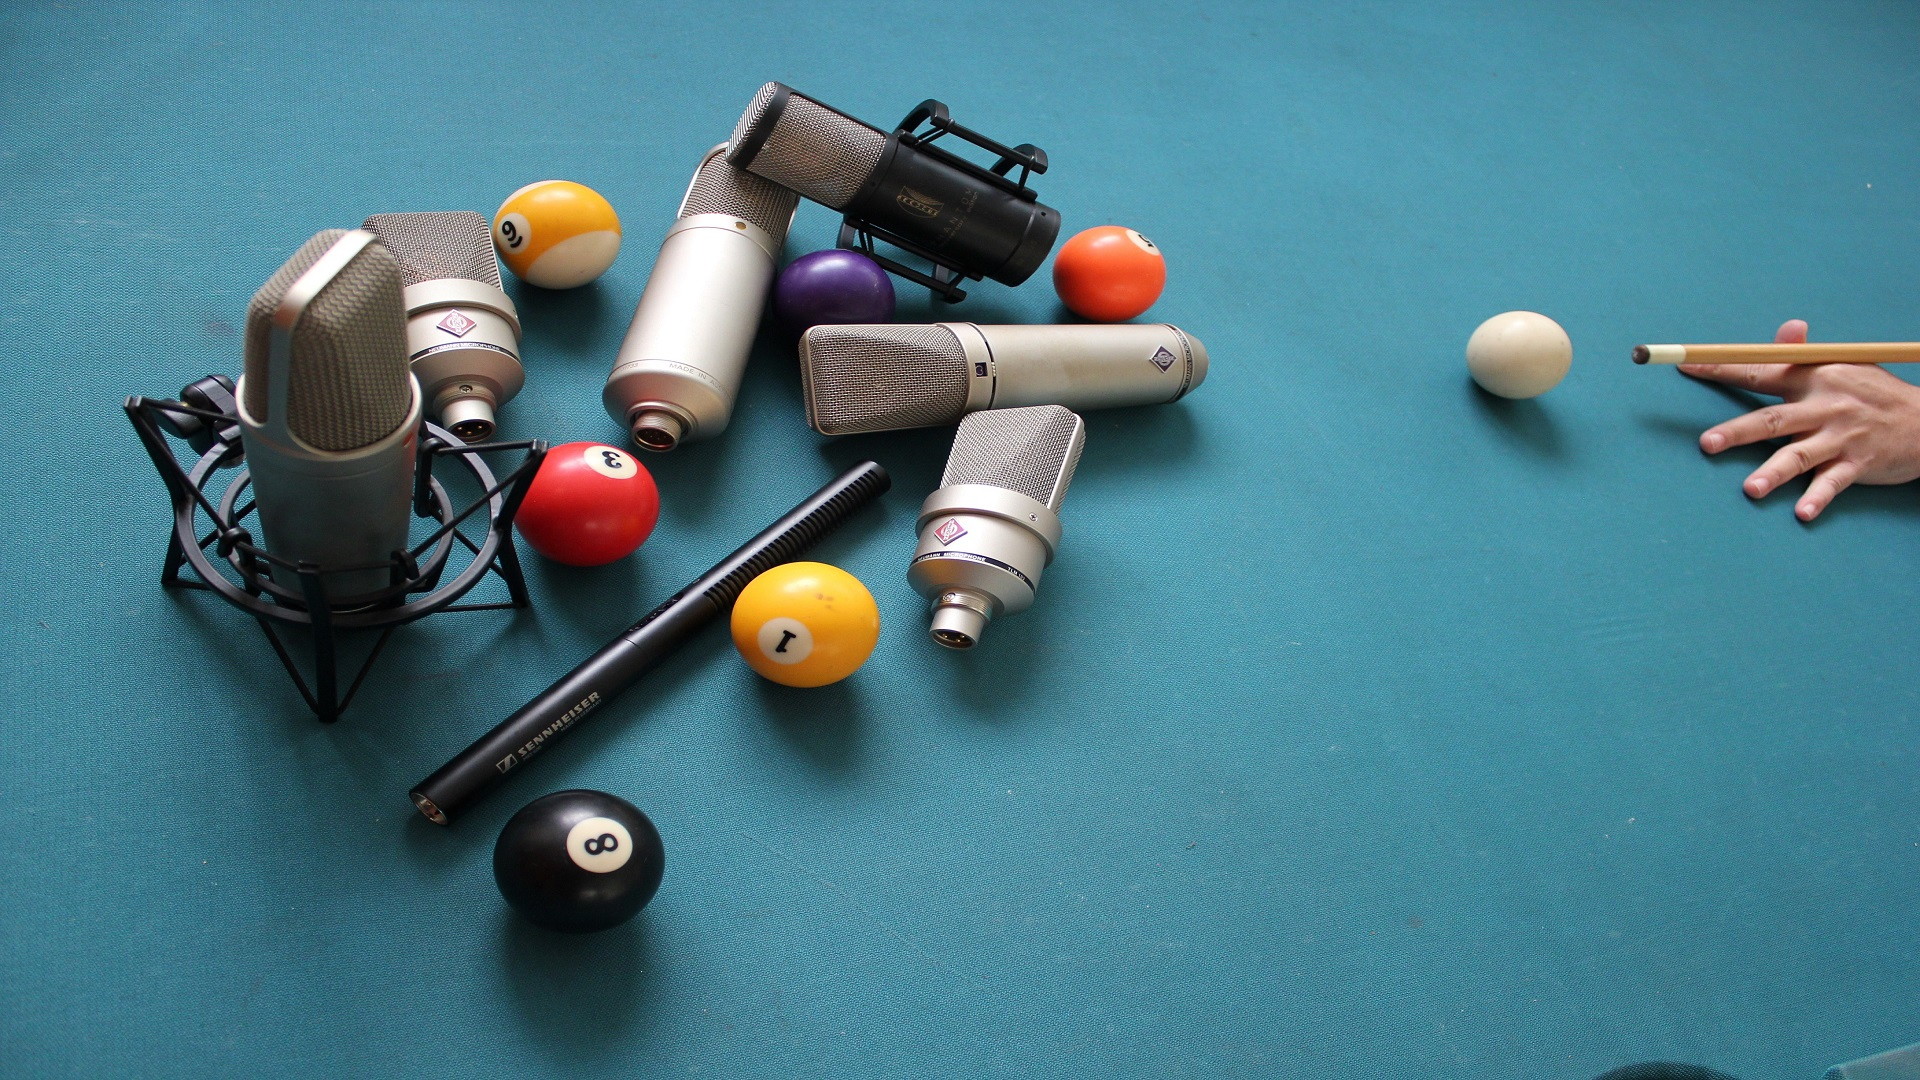 Greek voices mics on a pool table